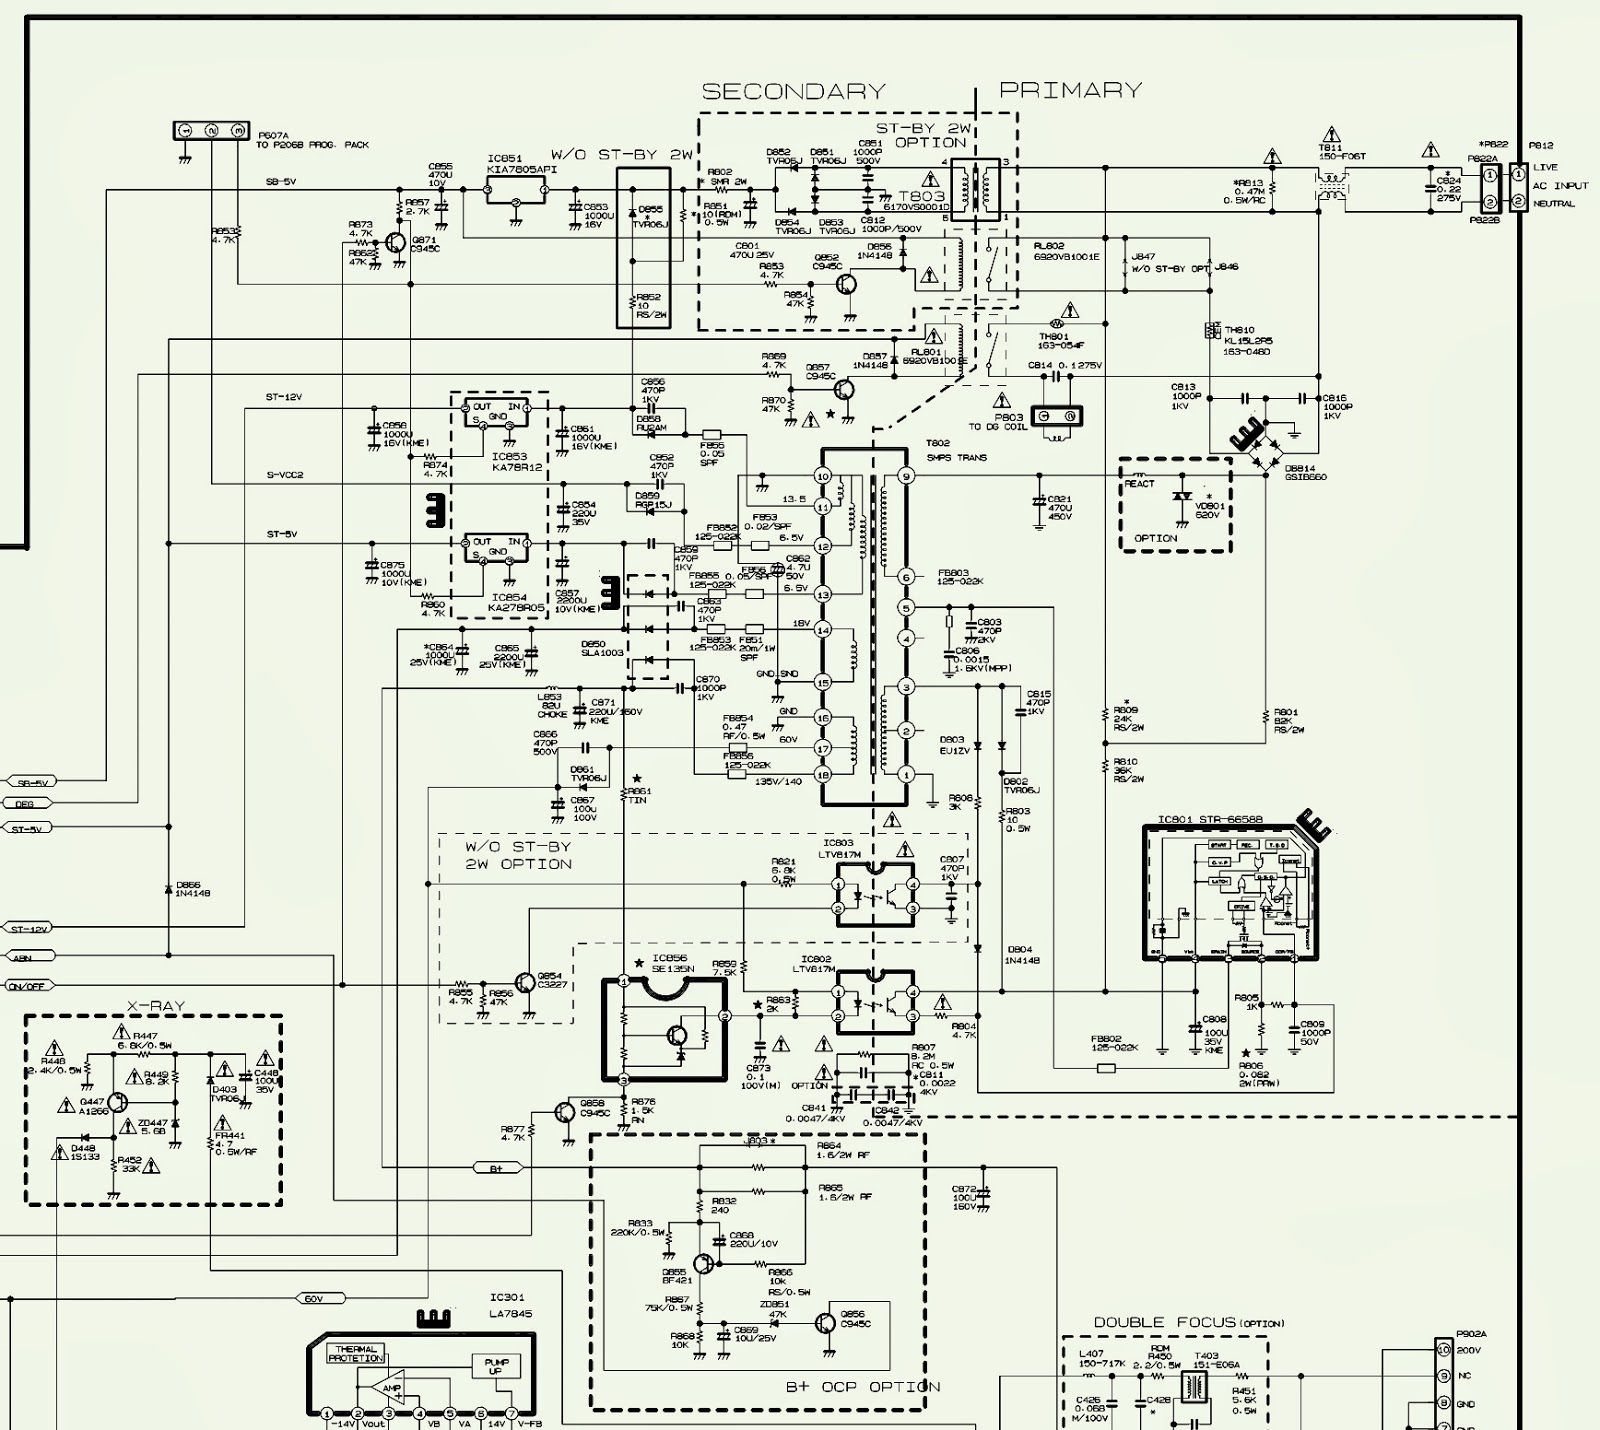 sansui tv circuit diagram free download circuit diagram images samsung tv circuit diagram group picture image by tag [ 1600 x 1430 Pixel ]